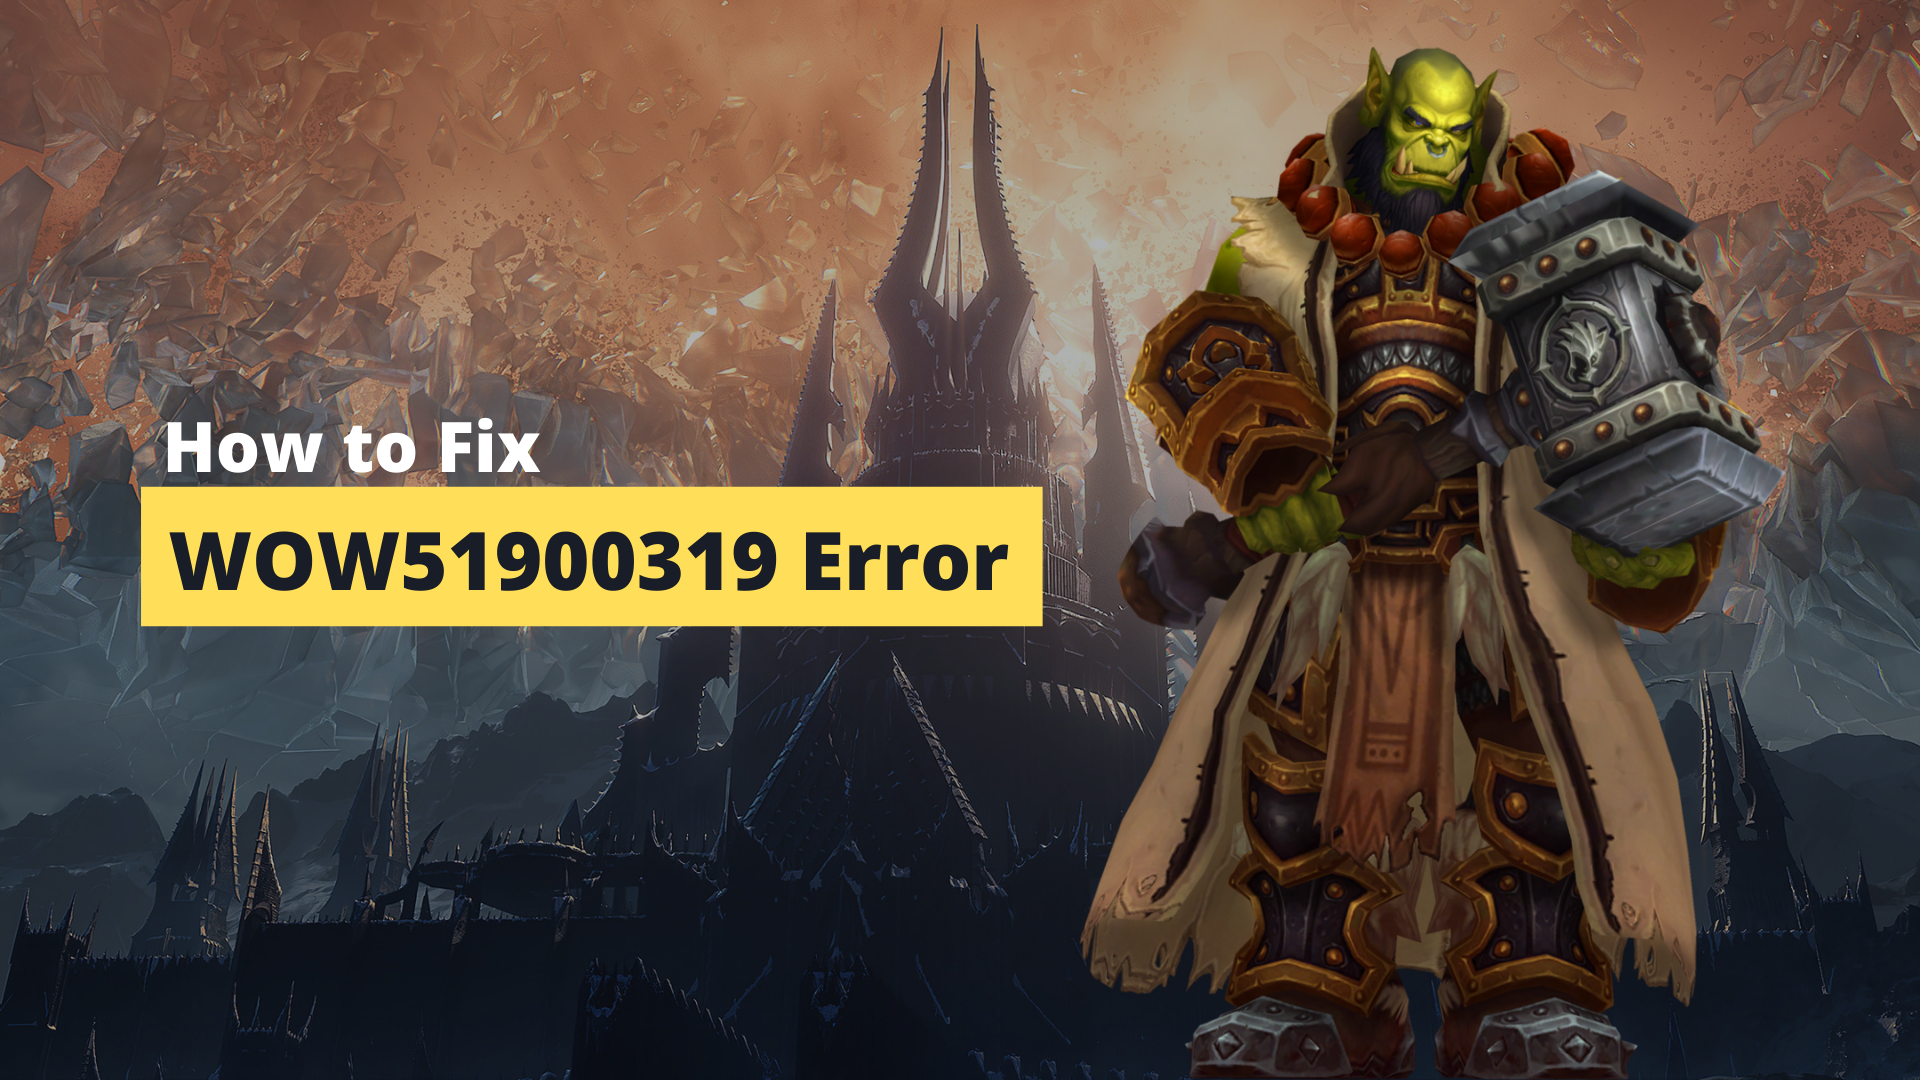 How to Fix WOW51900319 Error